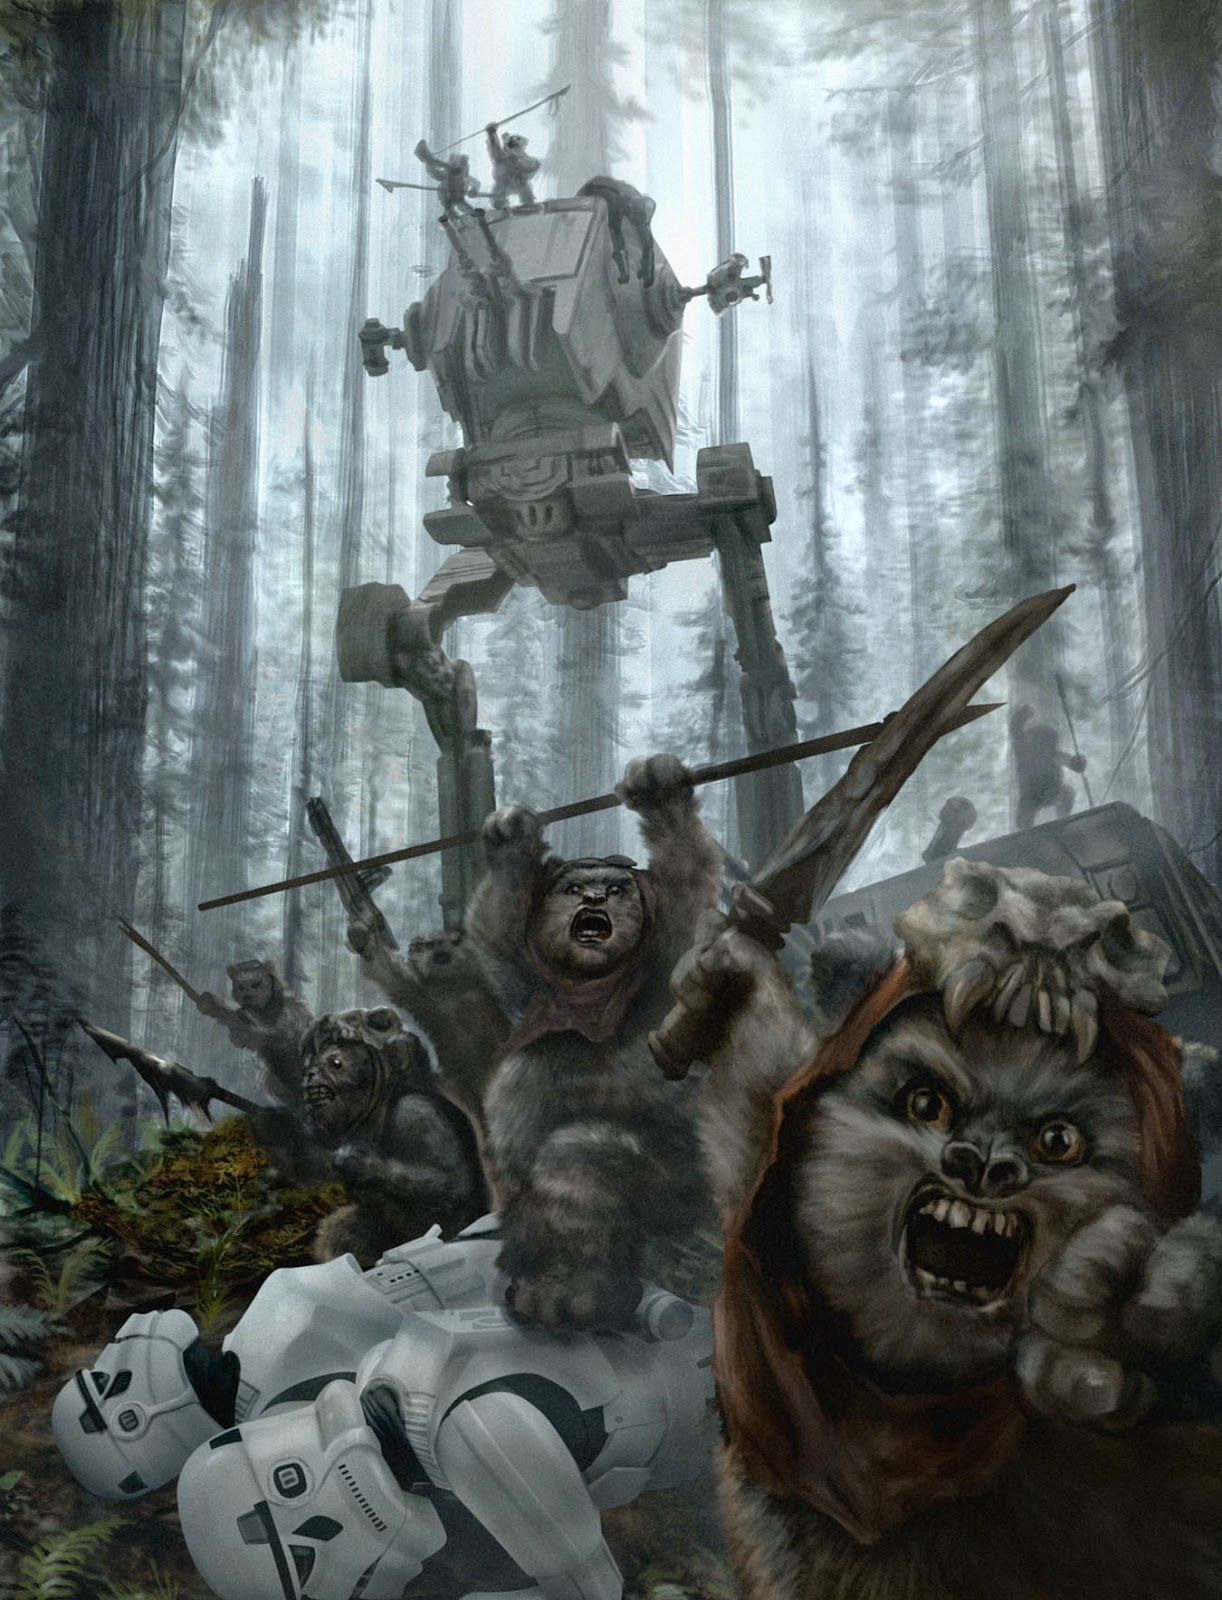 Ewok victory over imperial forces